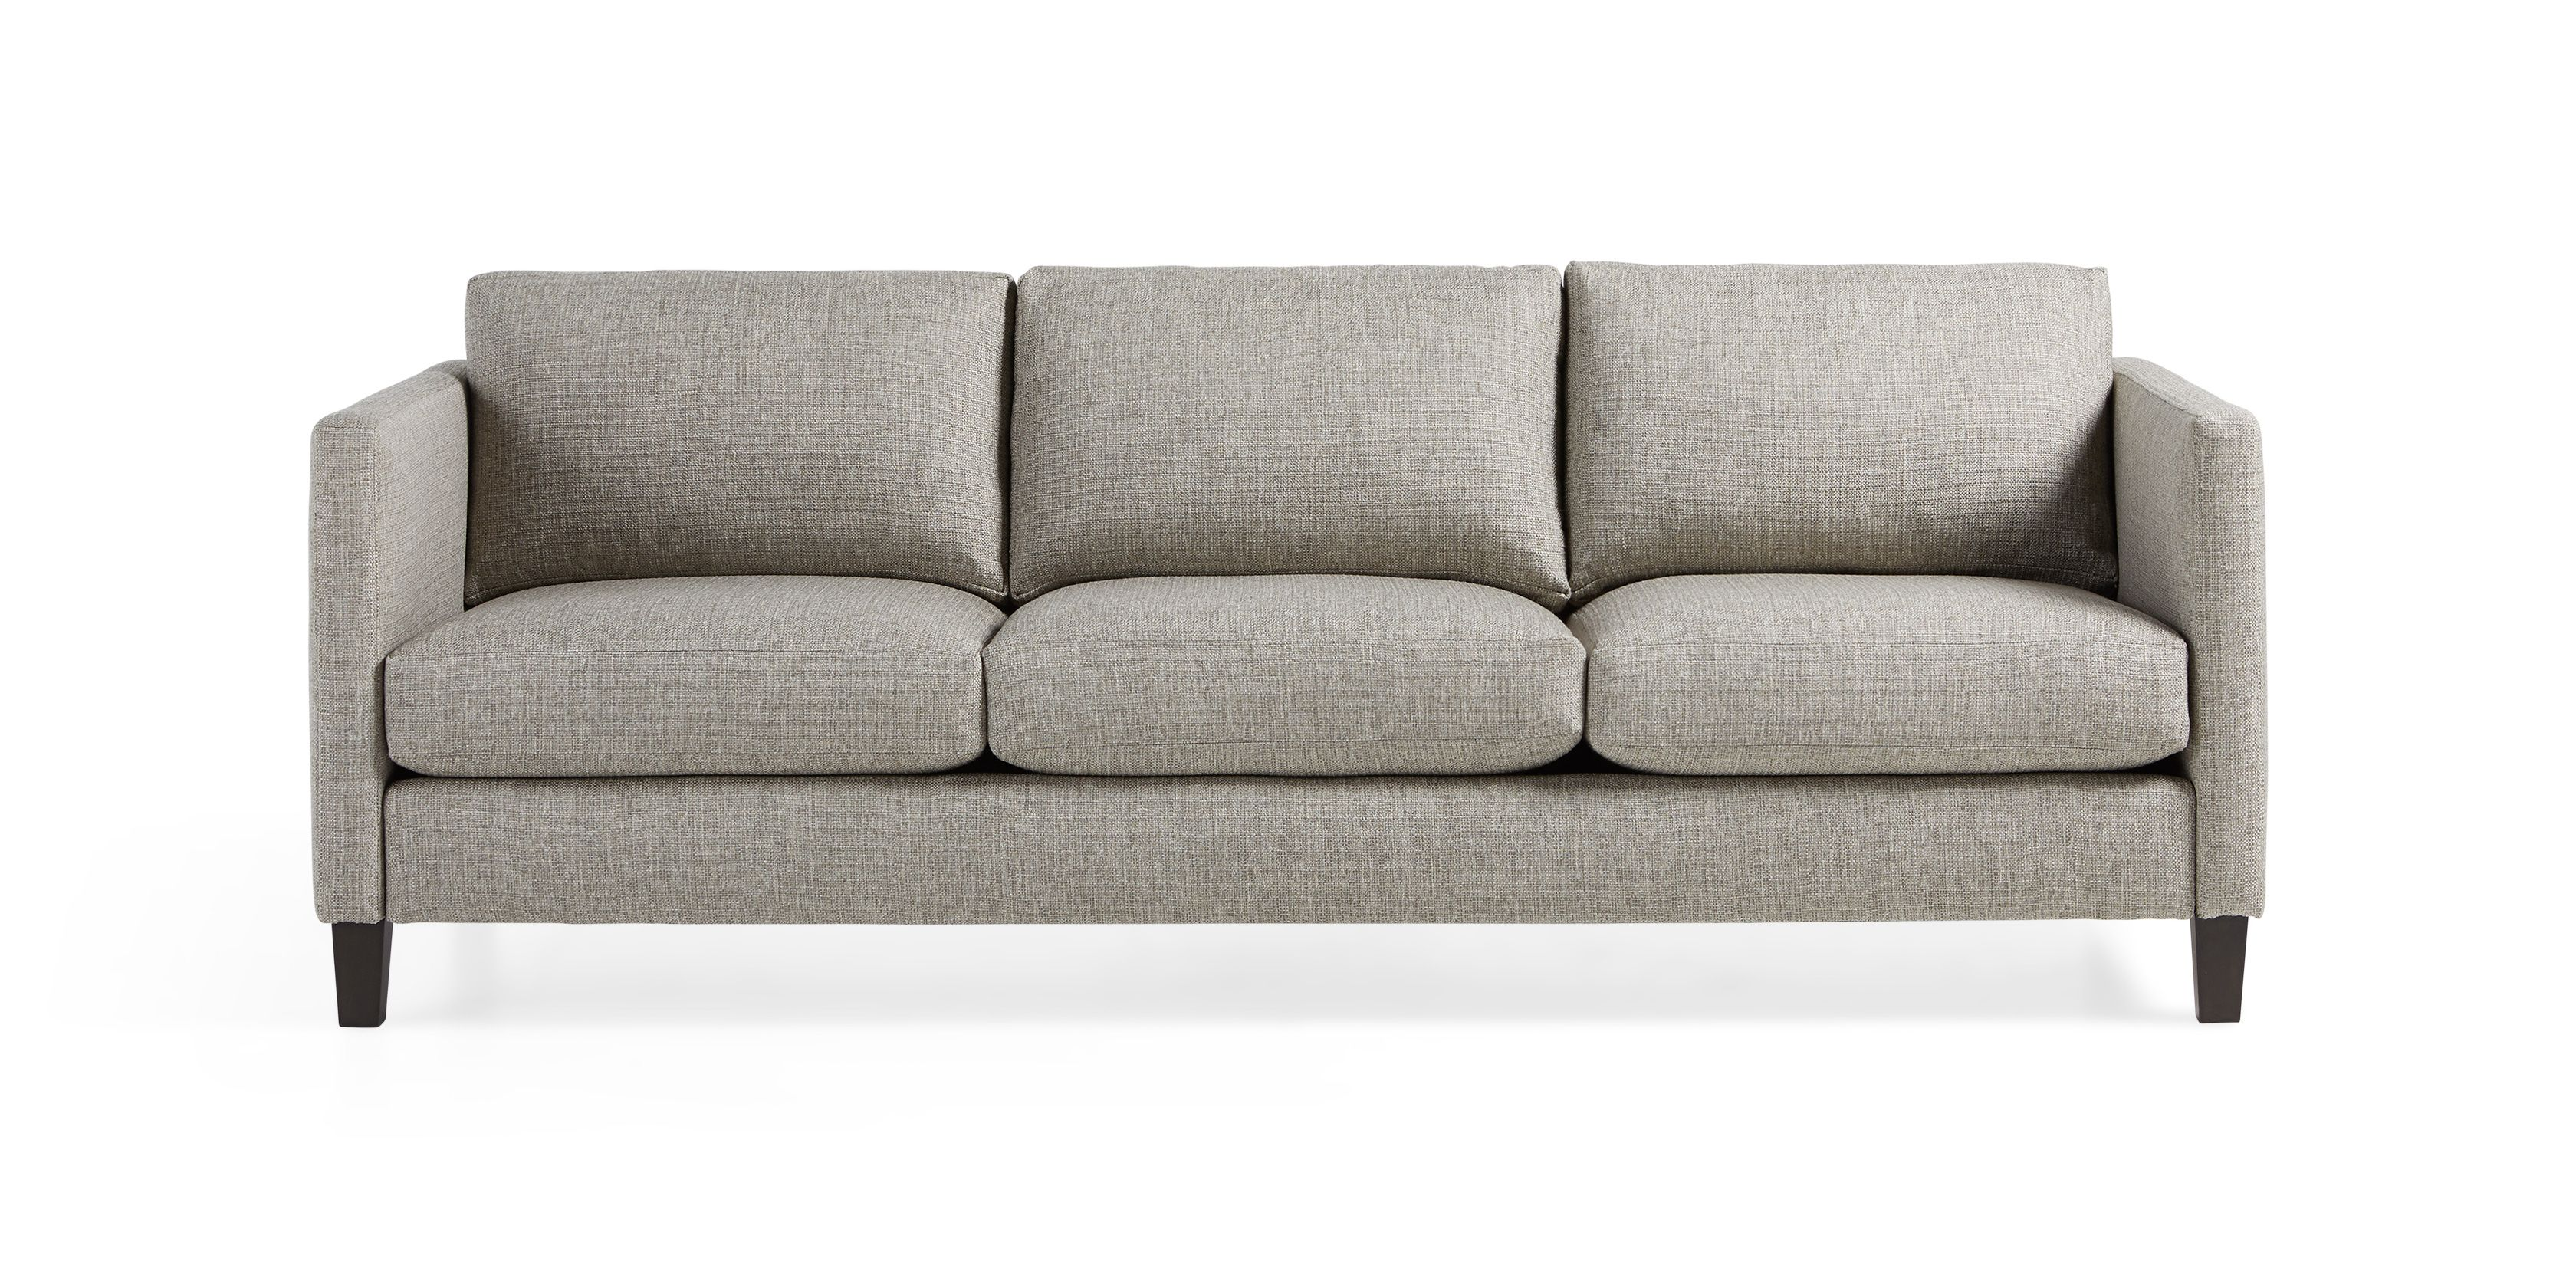 Taylor Easy Connect Sofa - Arhaus Furniture